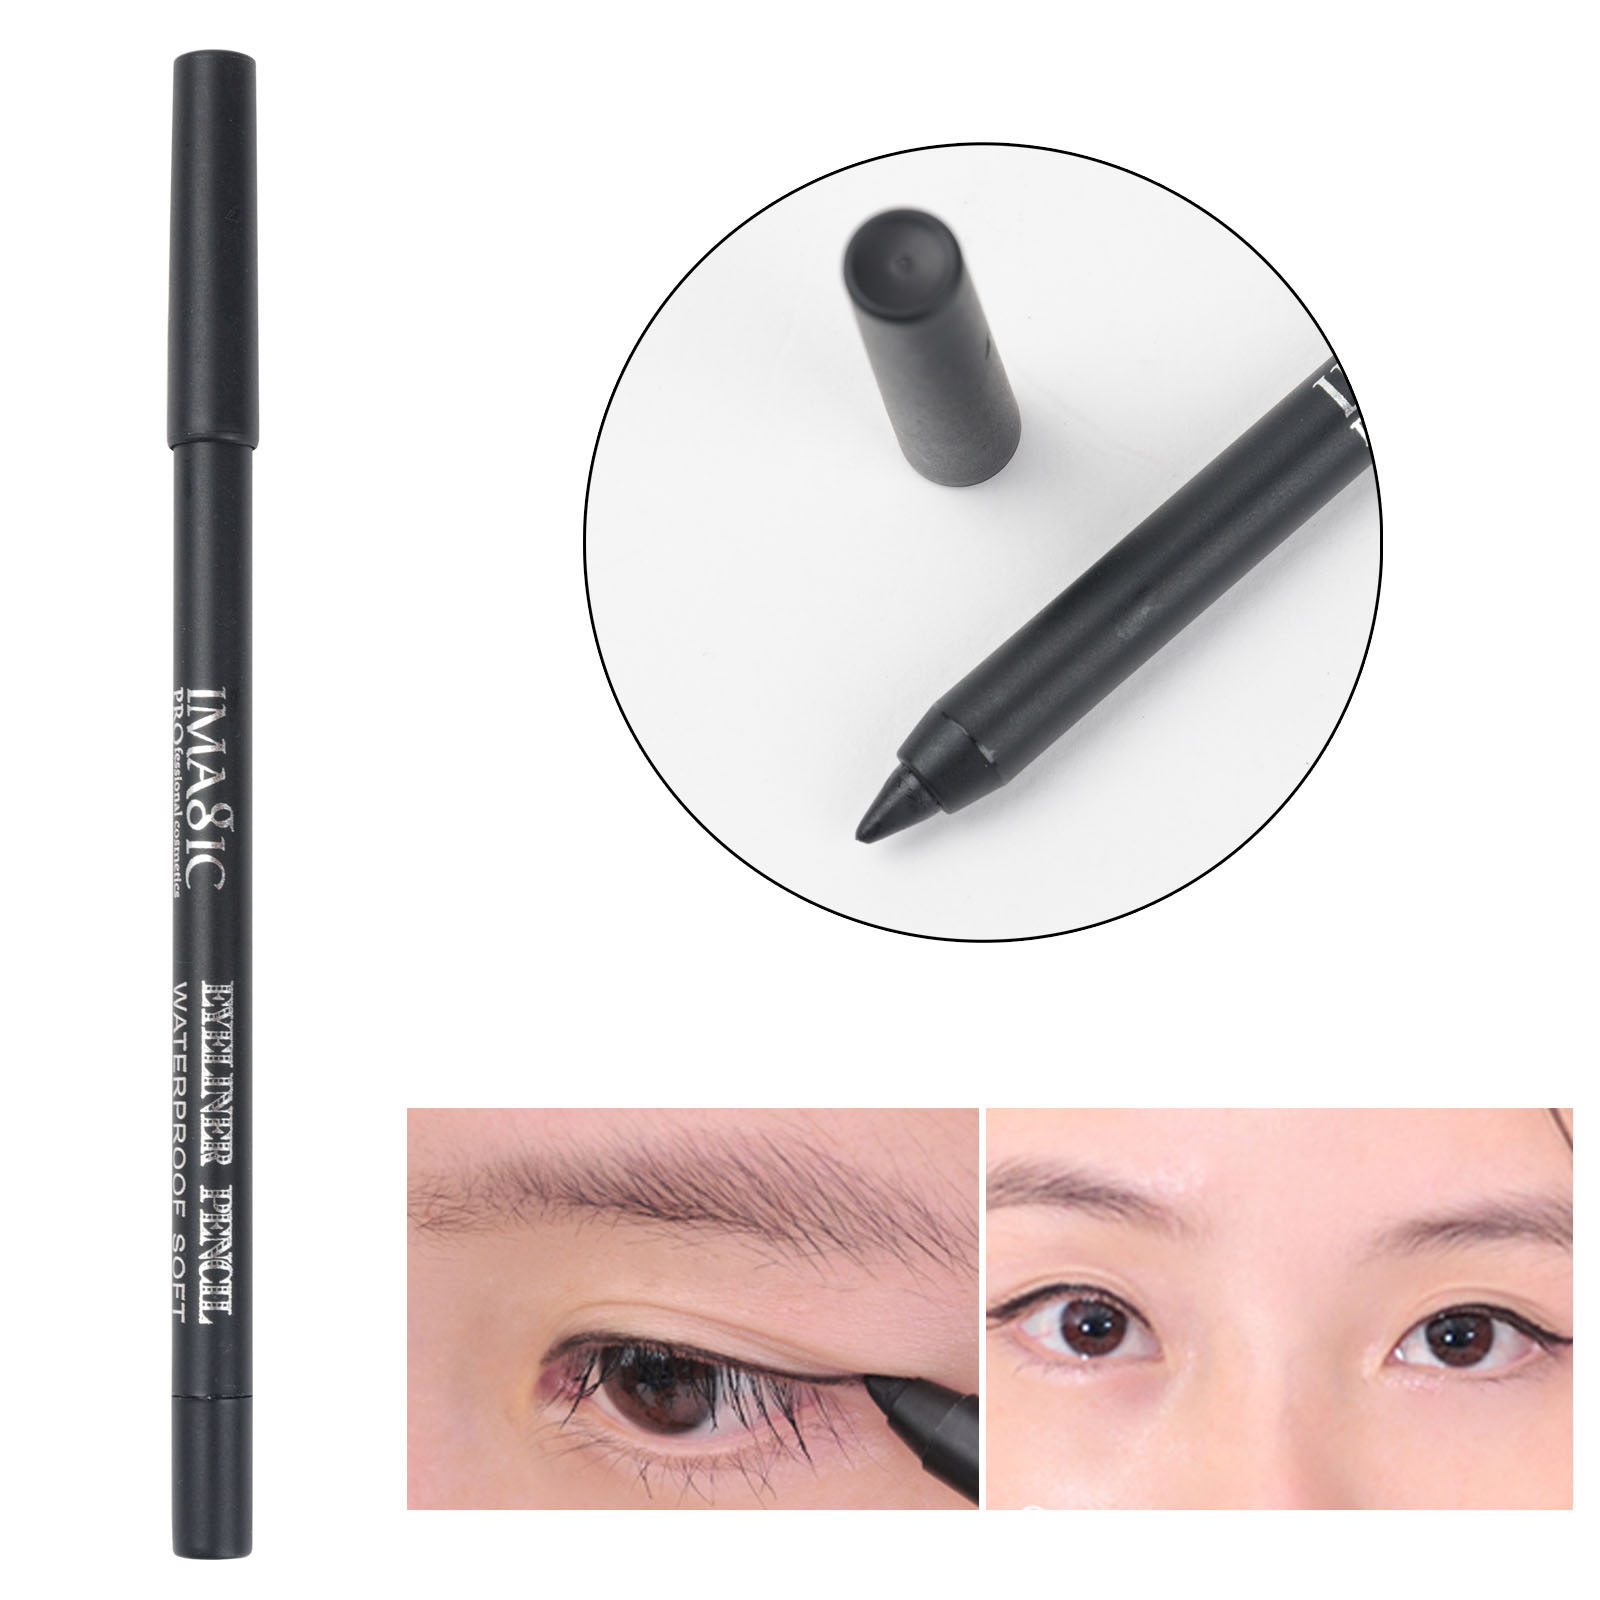 Shellhard 1pc Professional Waterproof Magic Eyeliner Shining Smudger Pencil for Eyes Make up Tool